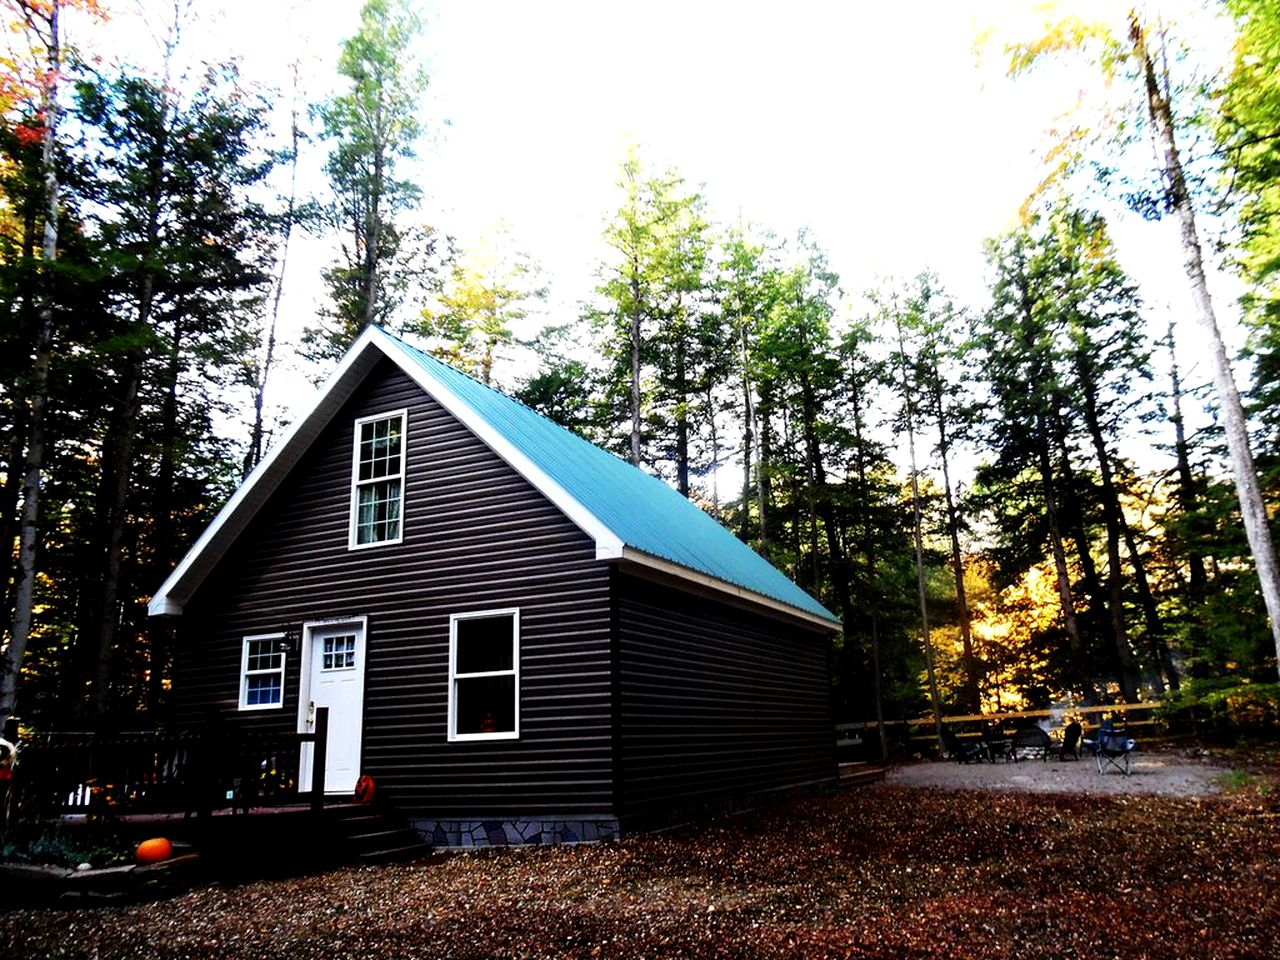 Brown log cabin rental with green roof surrounded by pine trees near Oneida Lake, New York.